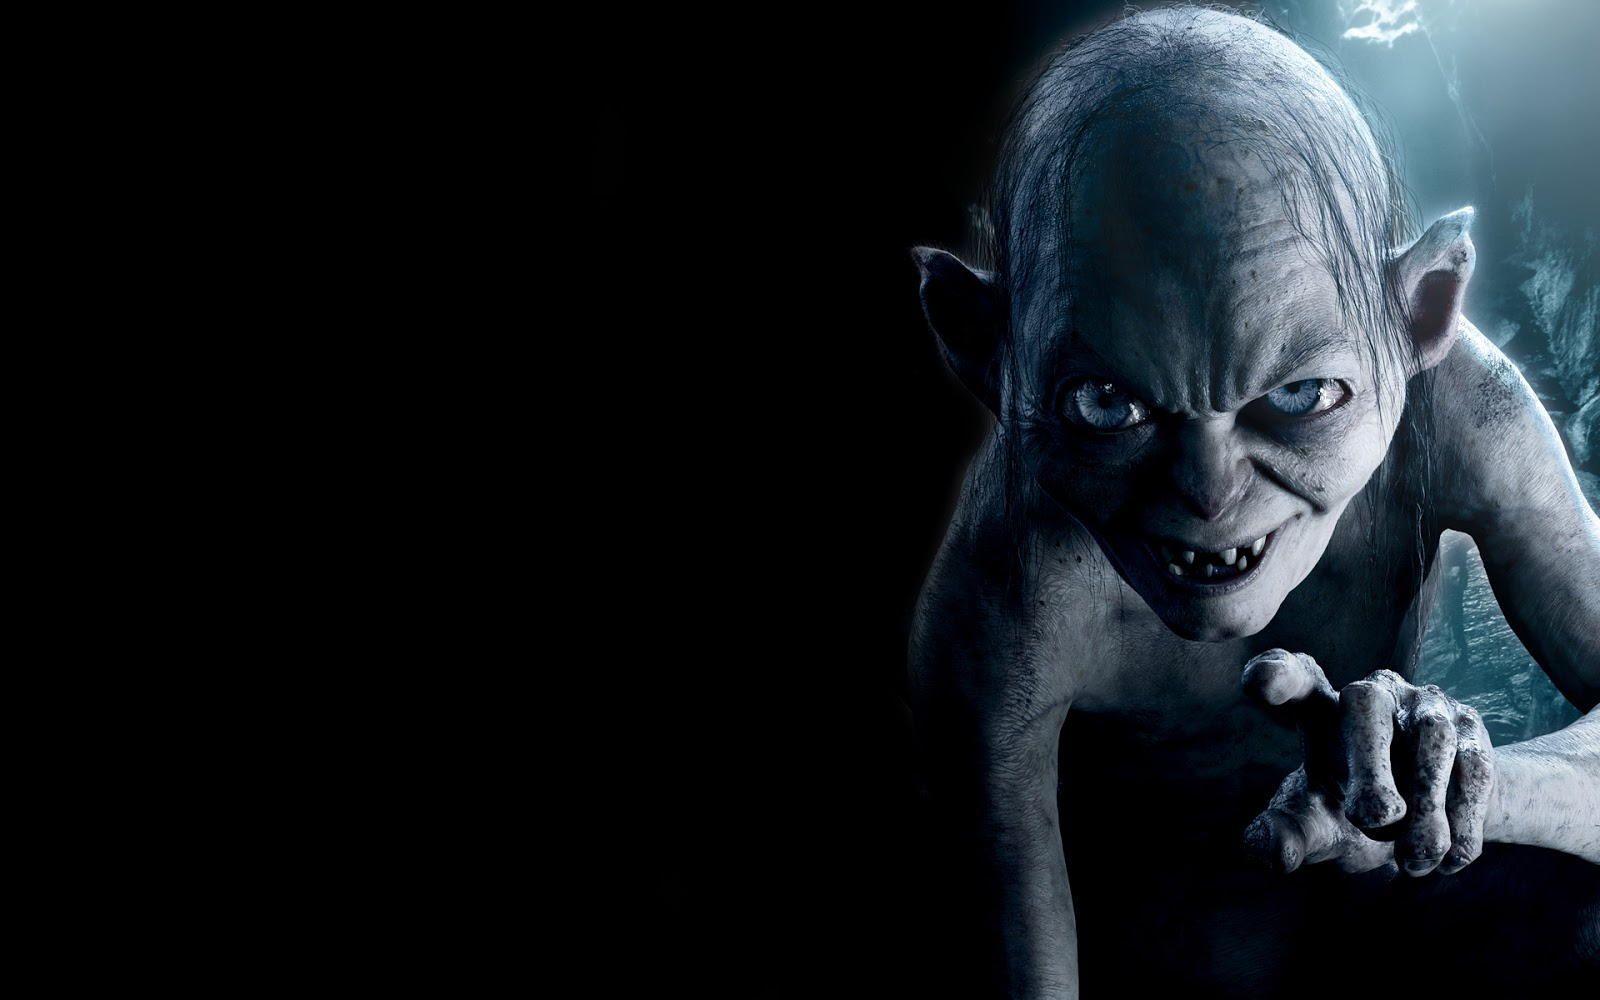 gollum hobbit an unexpected journey movie hd wallpaper | download hd